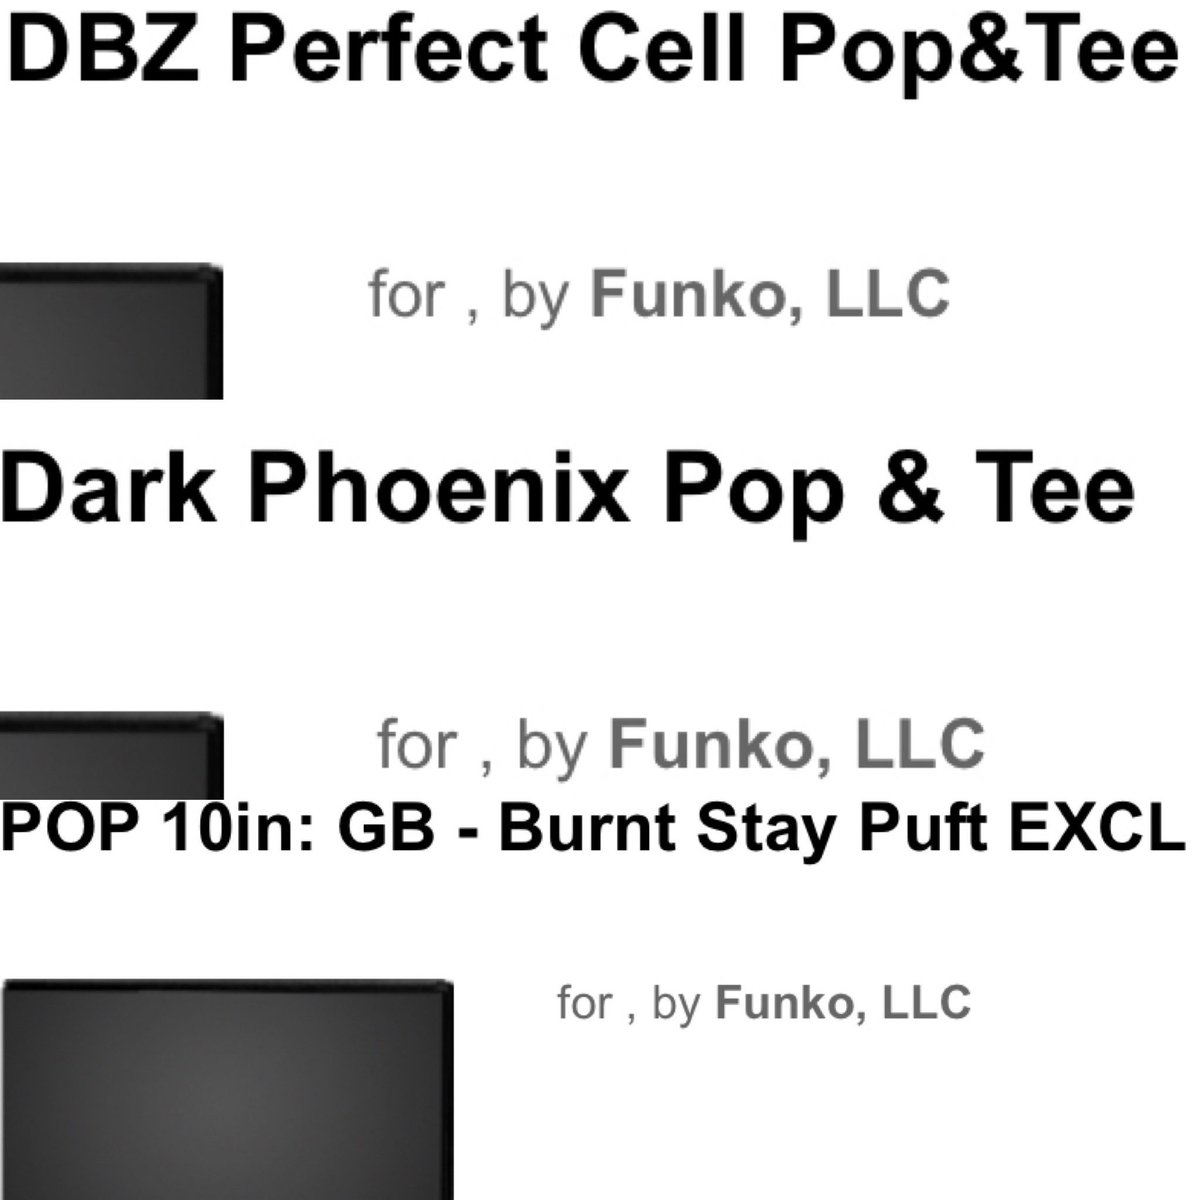 Disfunko On Twitter Perfect Cell And Dark Phoenix Pop Tee Bundles Could Be Coming Soon To Gamestop Also A 10 Burnt Stay Puft Could Be On The Way Https T Co Hpiwqwm4rk